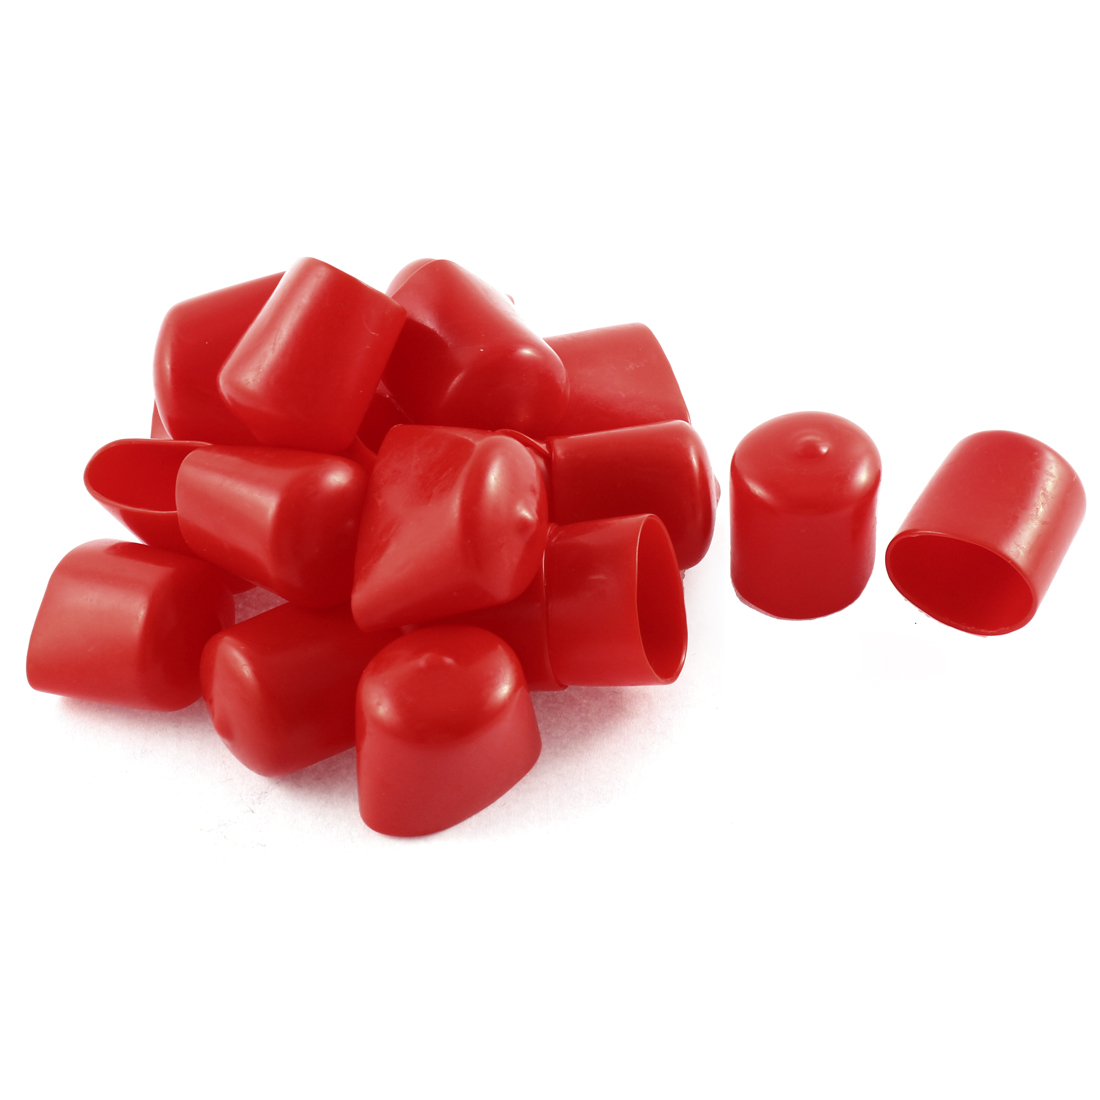 20Pcs Red Soft Plastic PVC Insulated End Sleeves Caps Cover 25mm Dia